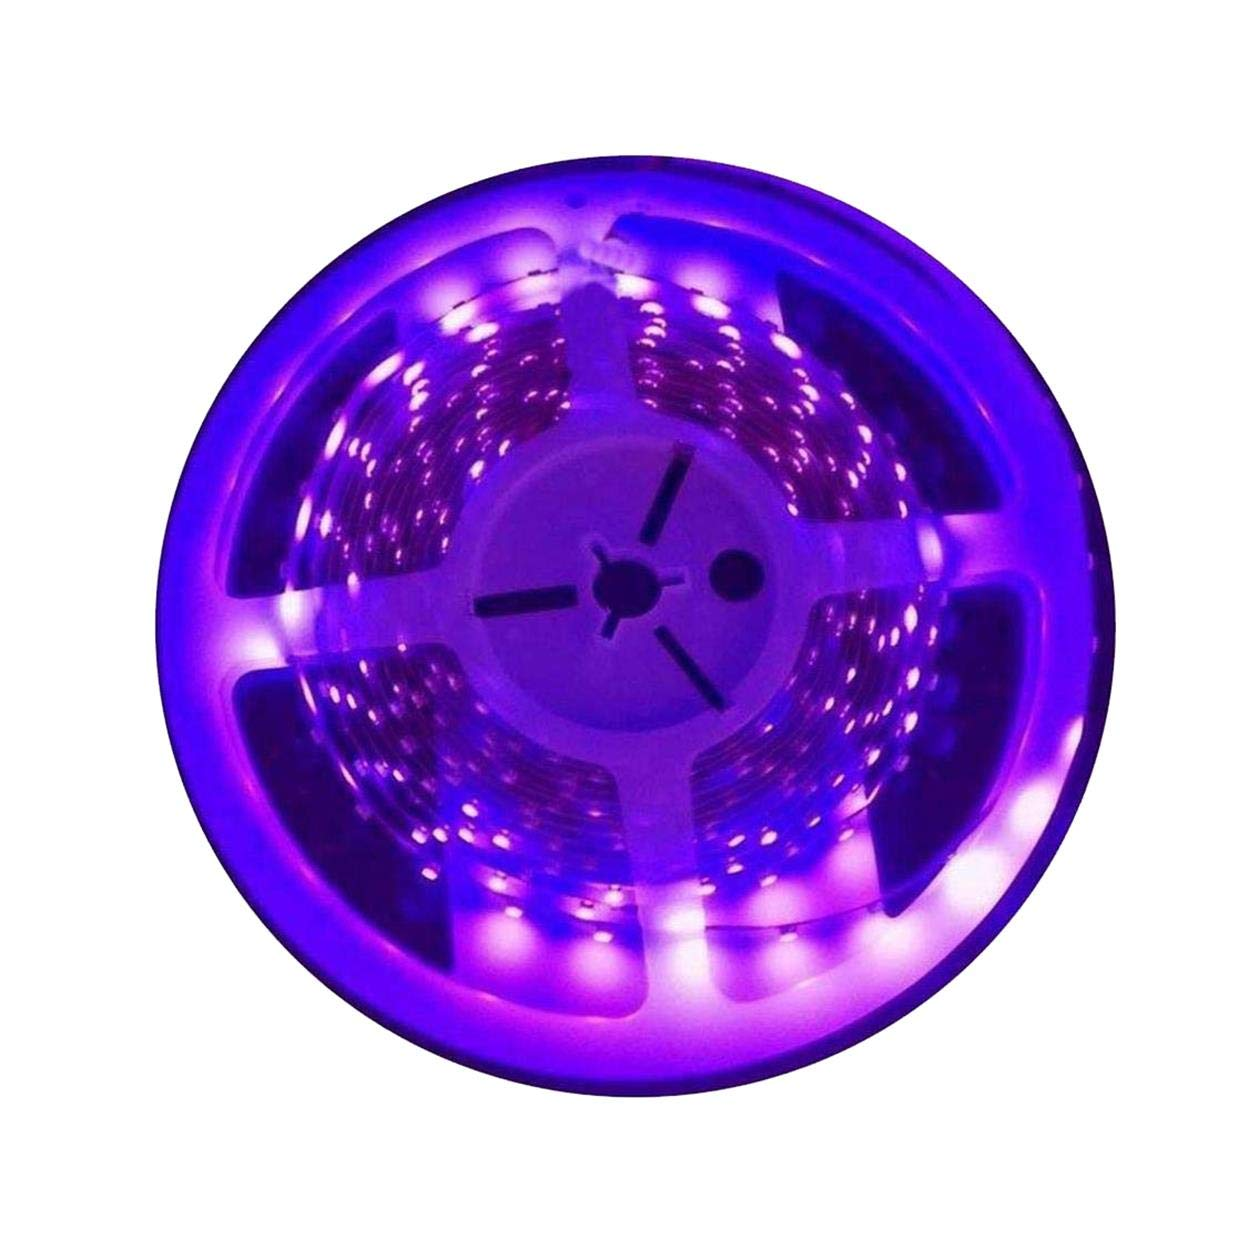 AMARS 5M/16.4ft 3528 SMD Blacklight UV/Ultraviolet 395nm-405nm LED Light Strip Fixtures DC 12V 60leds/m 300 LED Purple Light Bulb Lighting H&PC-63103